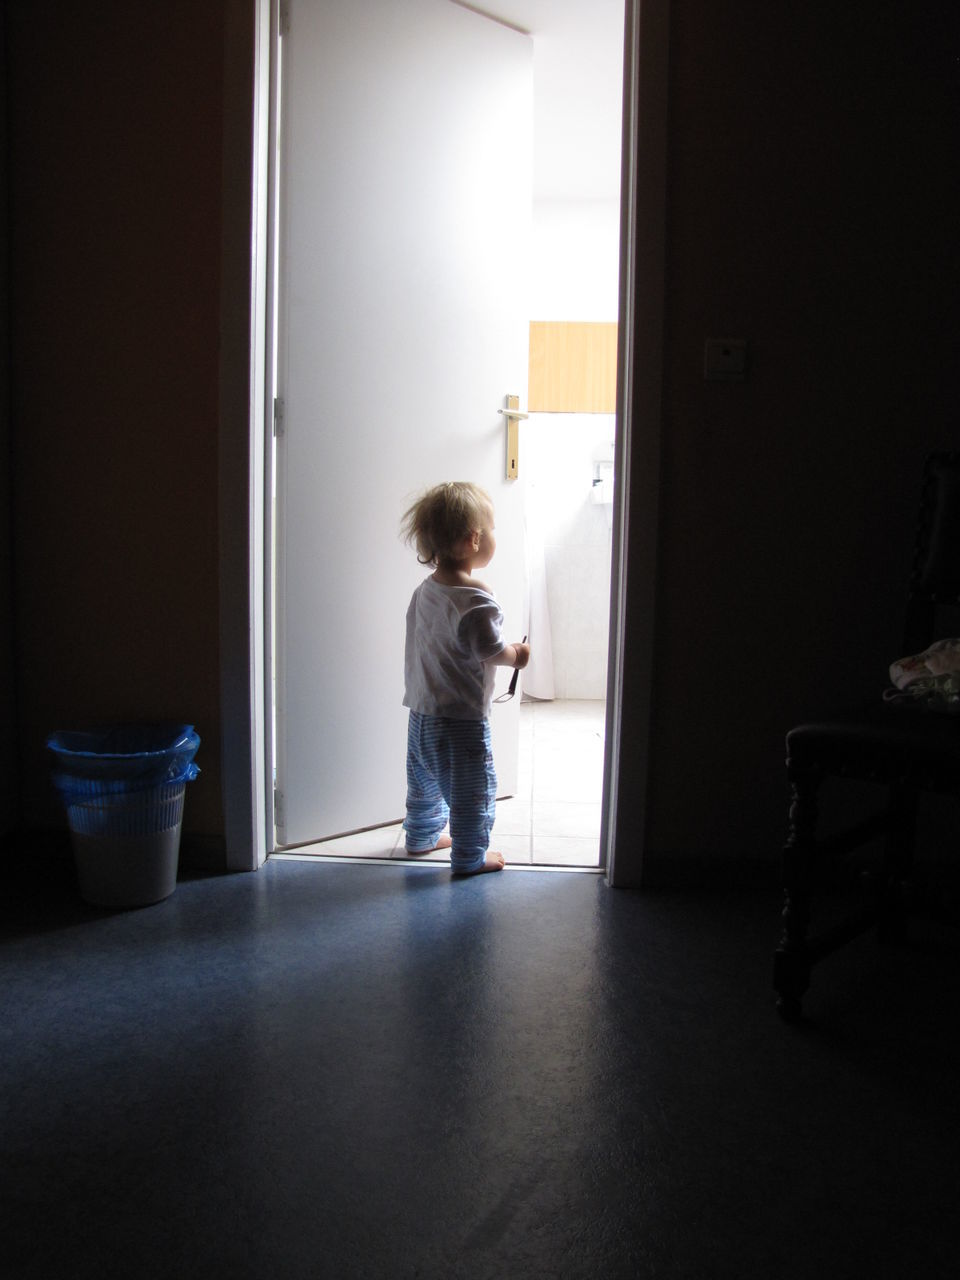 childhood, child, full length, indoors, standing, one person, boys, real people, casual clothing, entrance, door, men, males, offspring, home interior, innocence, lifestyles, domestic room, day, contemplation, waiting